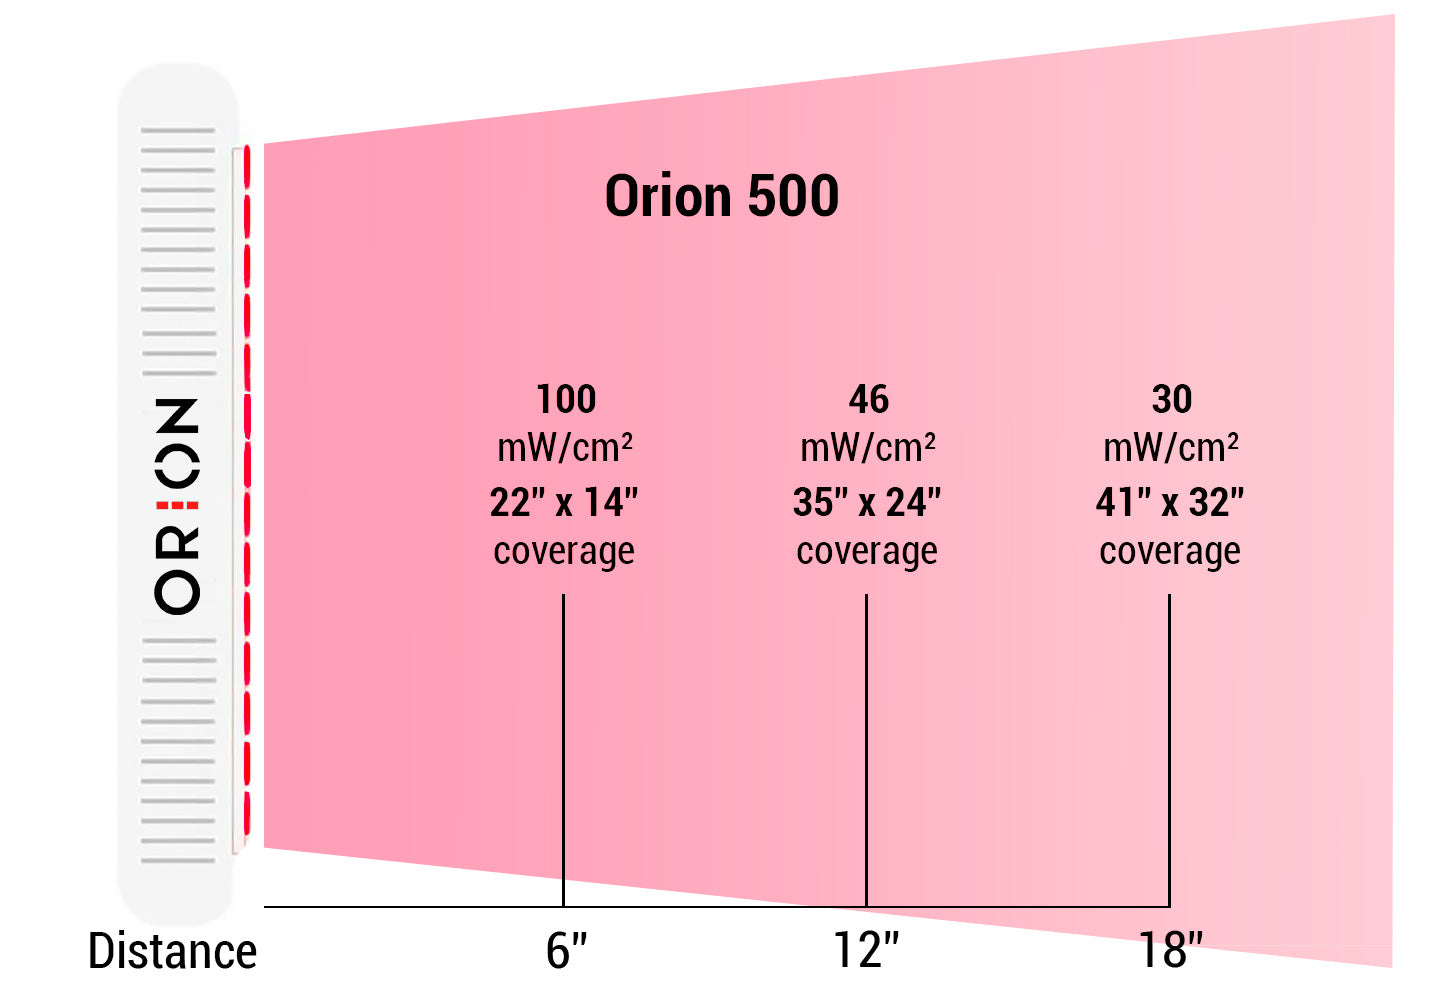 Orion Red Light Therapy 3, 6, 12, and 18 inches. Orion 500.